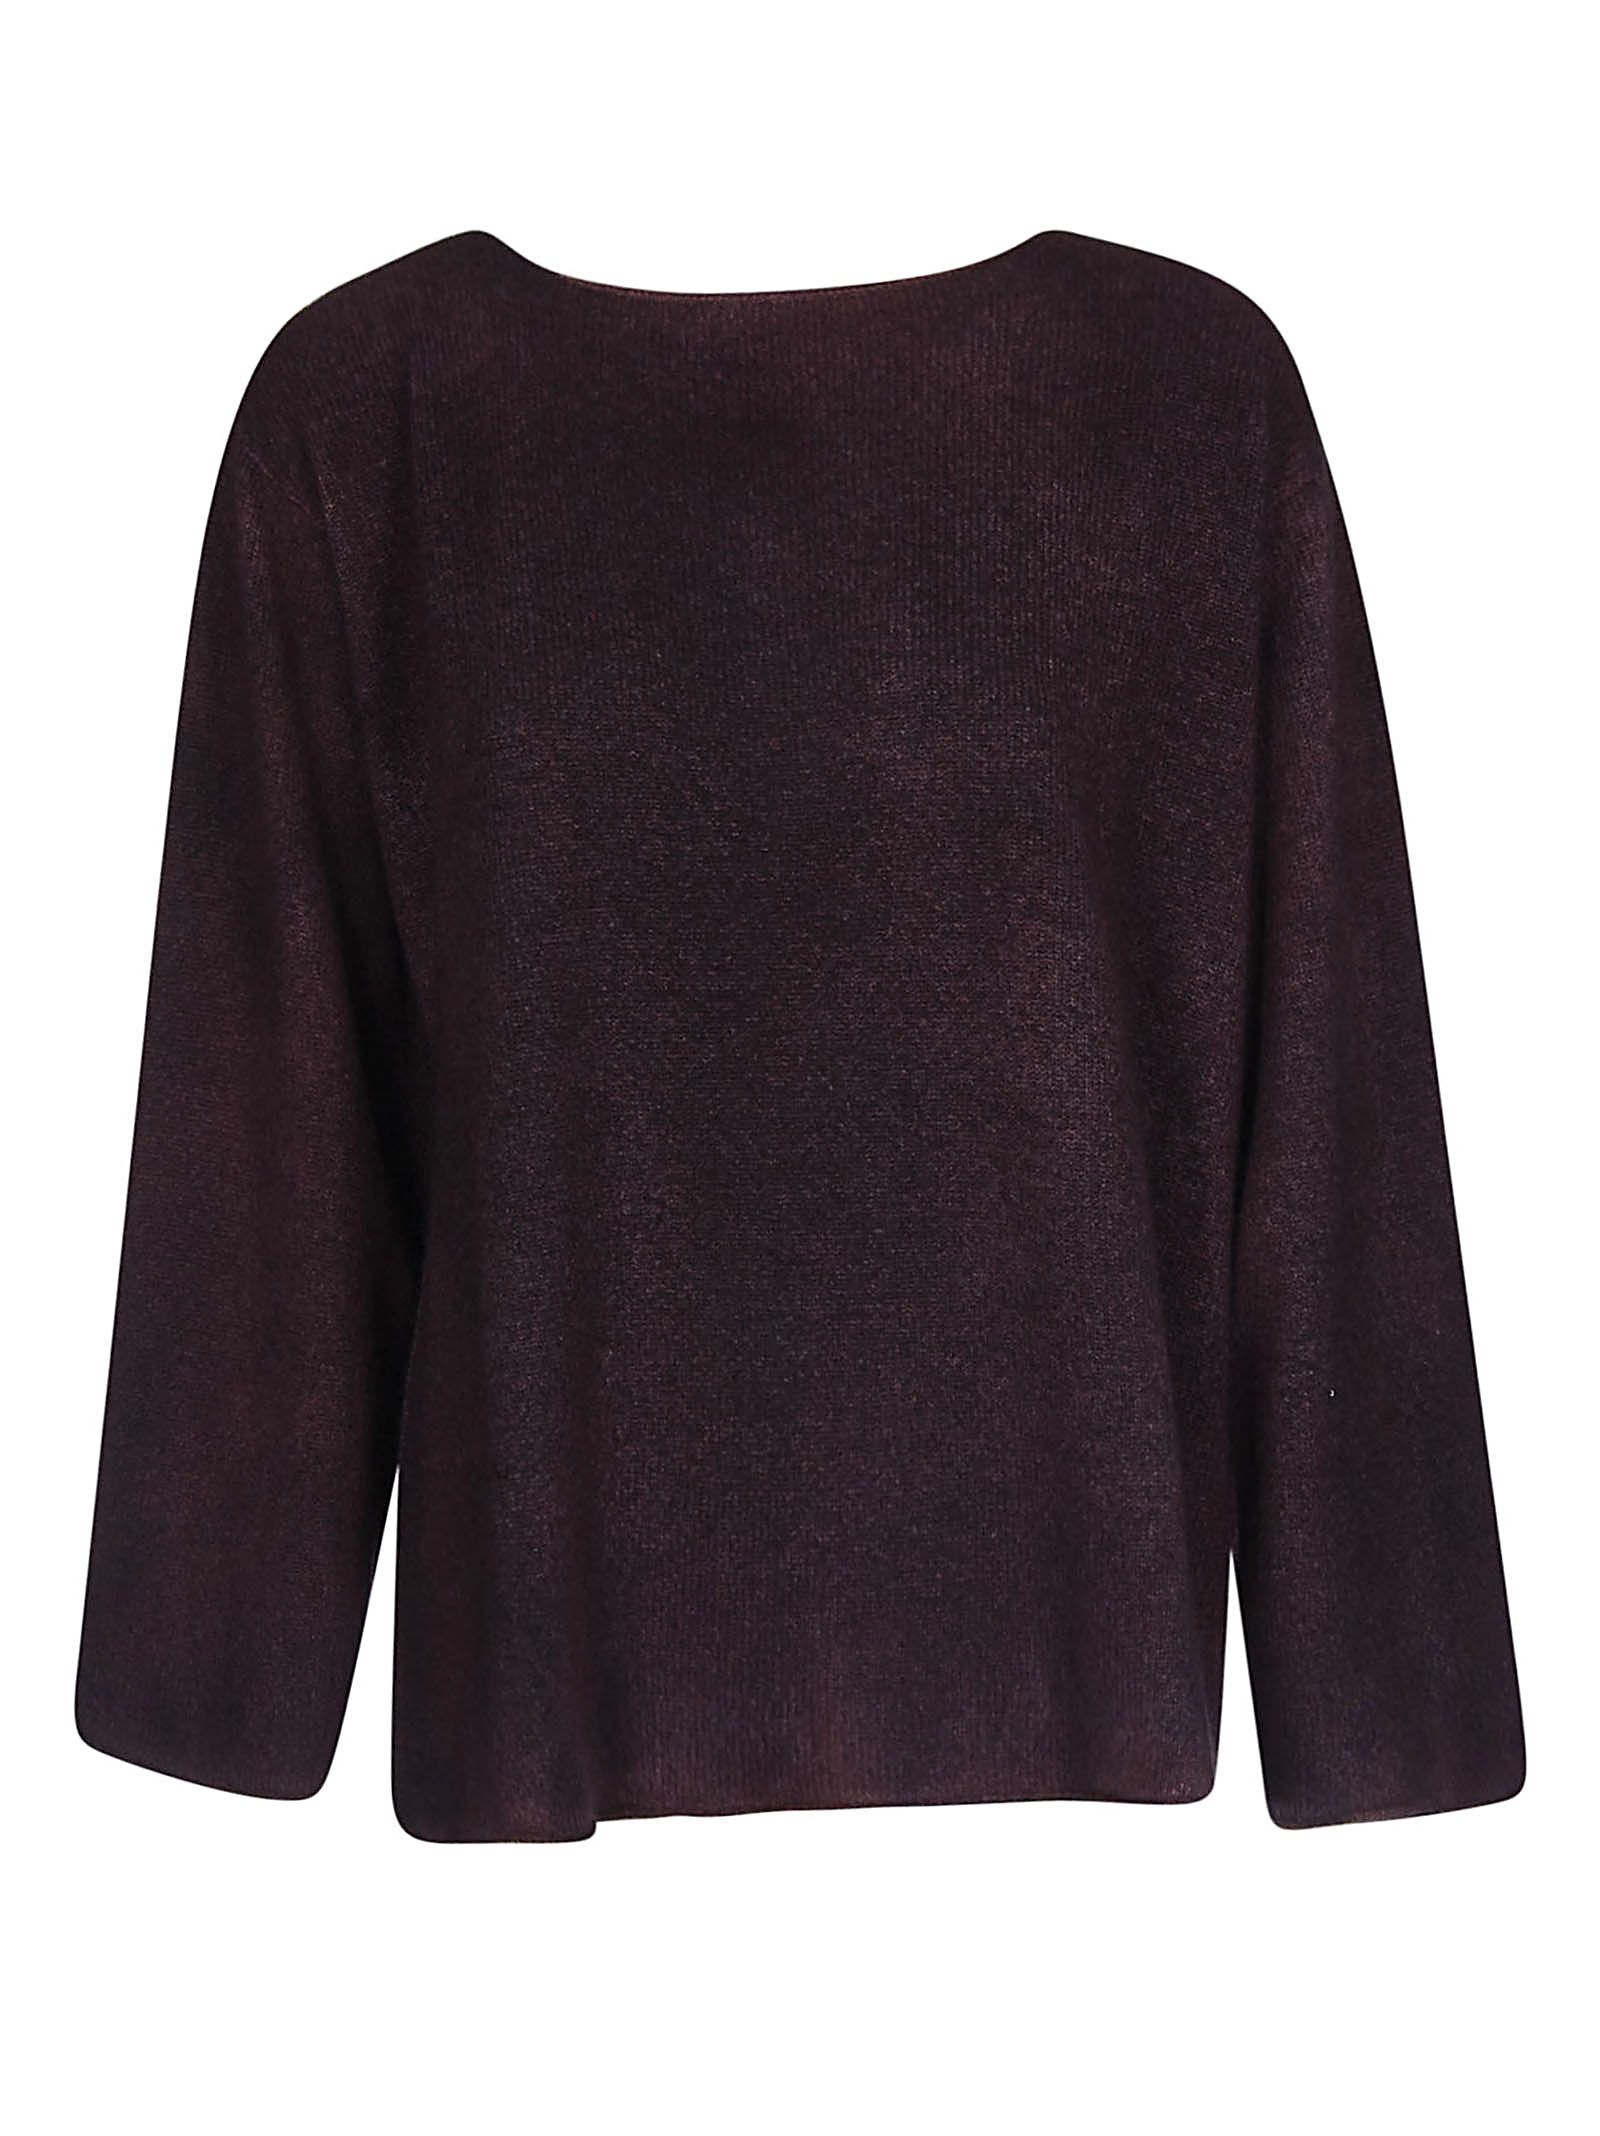 F CASHMERE F Cashmere Knitted Sweater in Plum